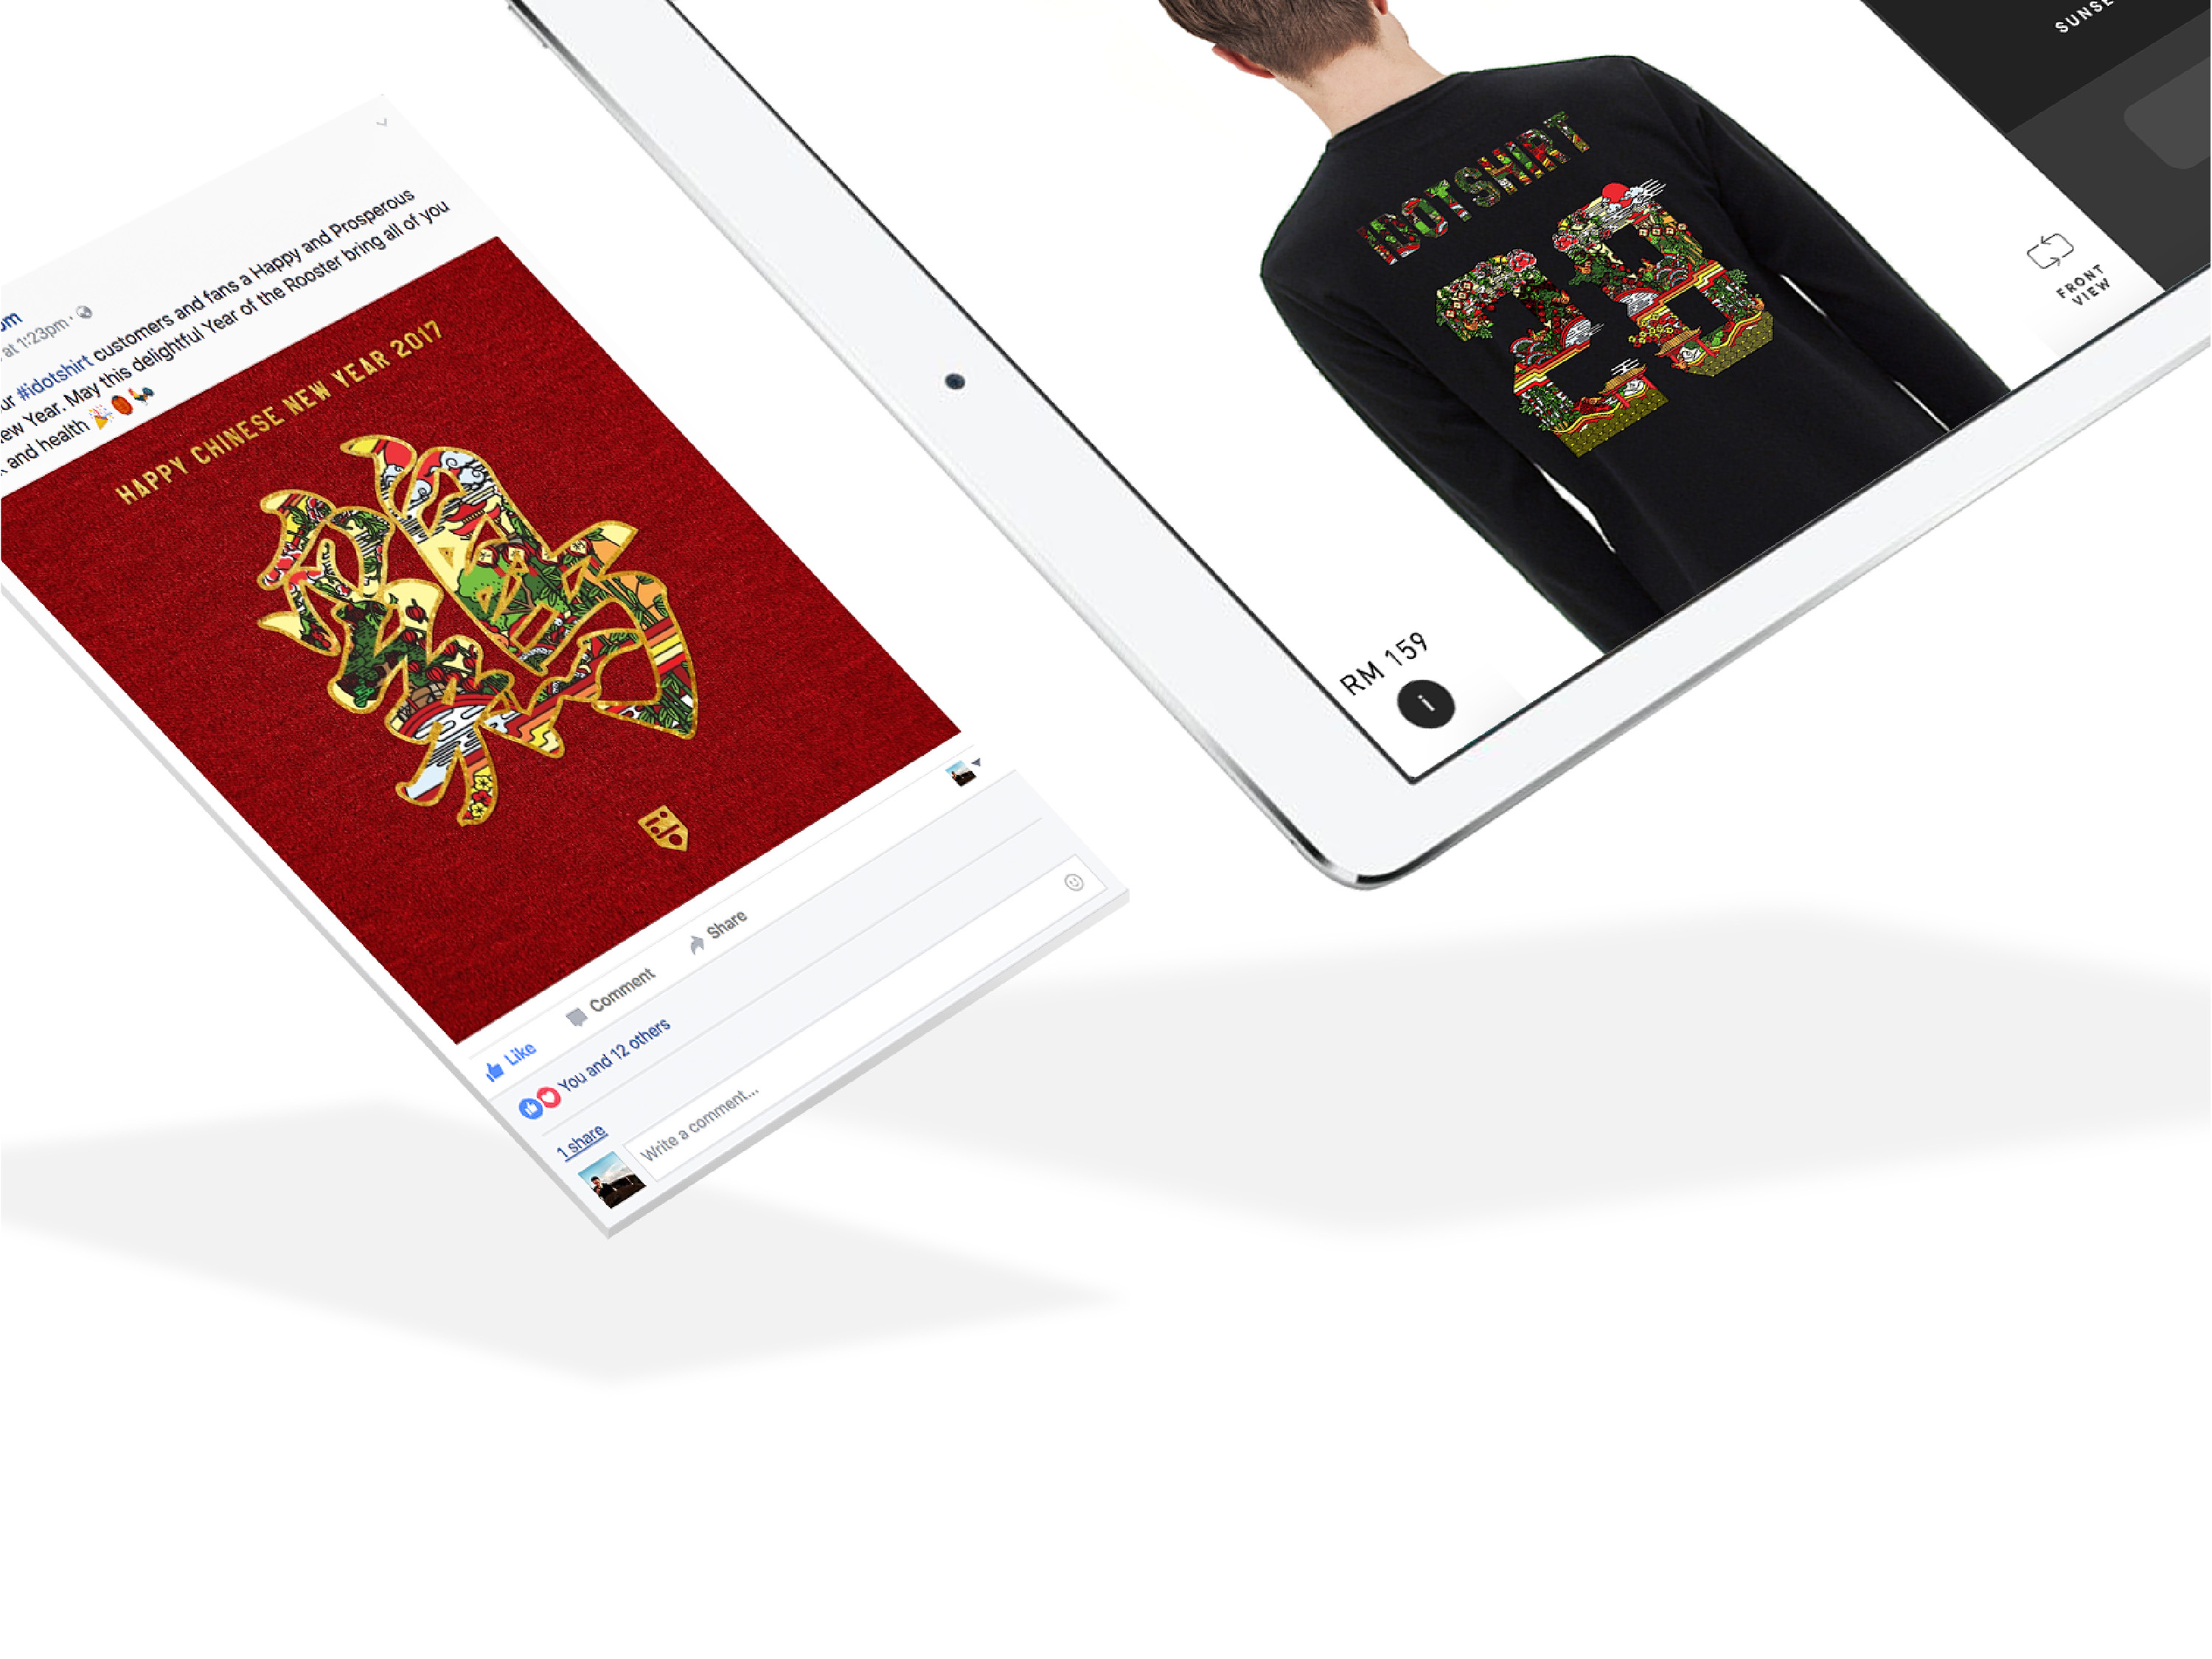 IDOTshirt fashion brand Chinese New Year - Year of the Rooster social media post design greeting featuring pattern masked in chinese word reading rooster with gold outline and words on red background as well as ecommerce shop option for this design viewed on tablet